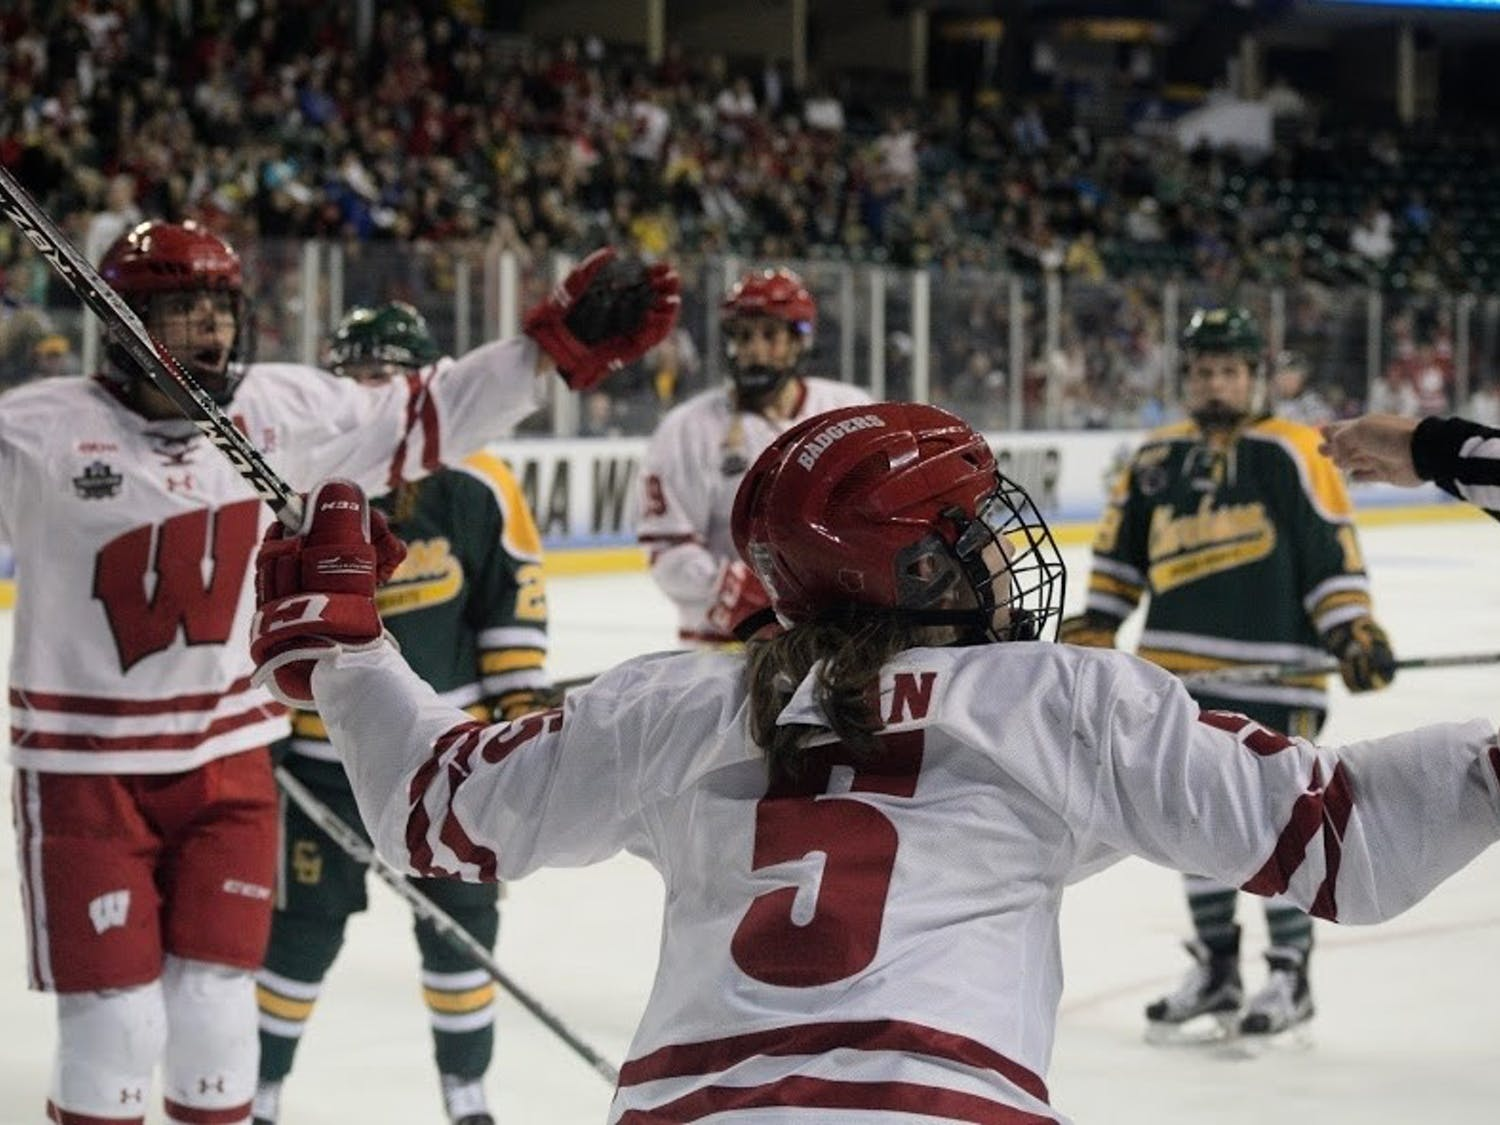 Wisconsin played a close game against Syracuse on Friday, but responded with a five goal outburst the next day.